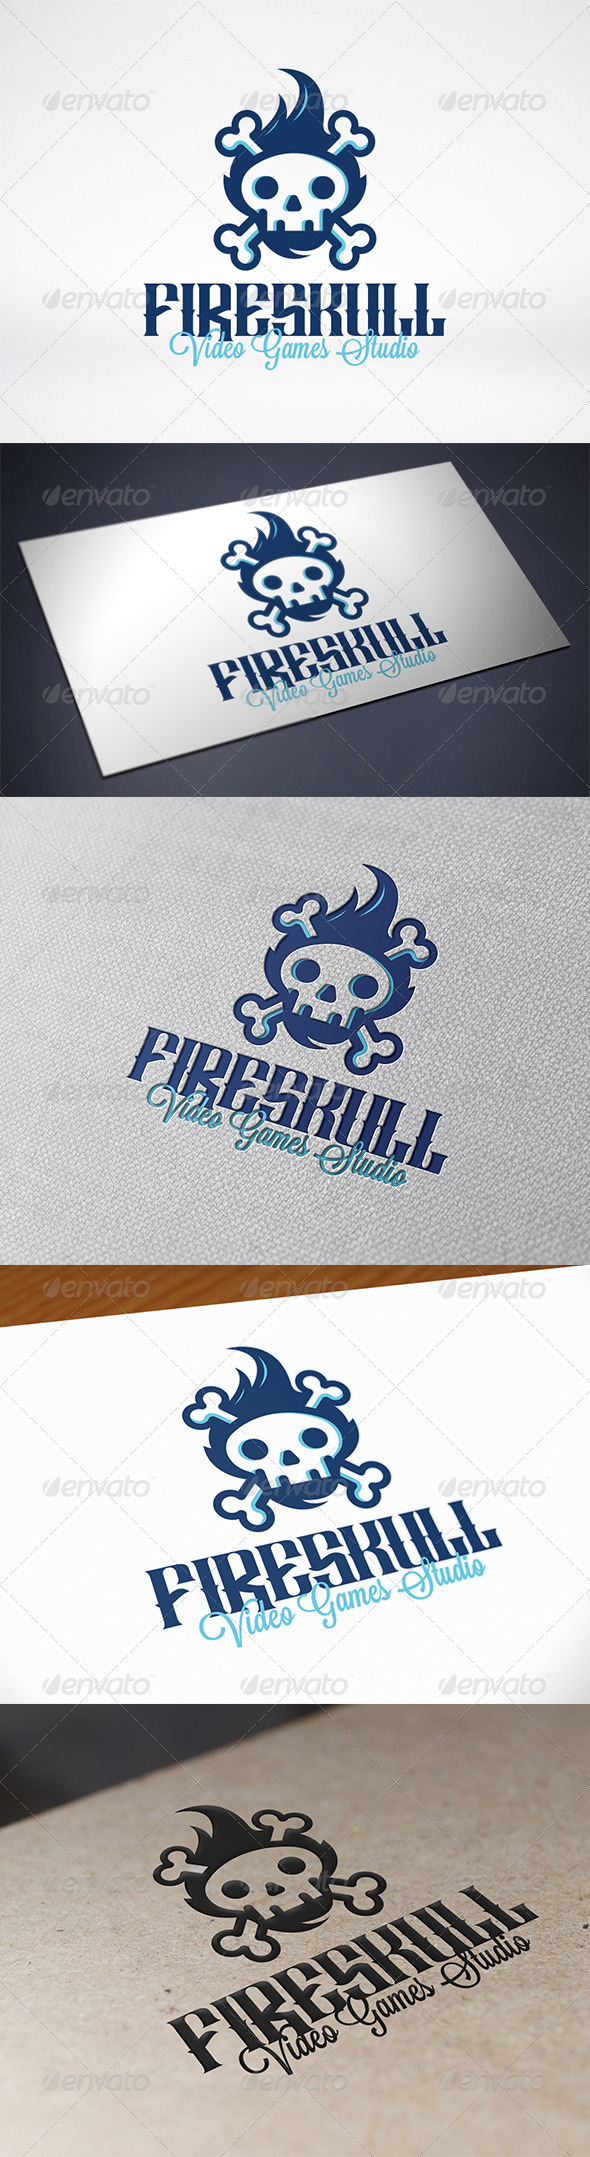 GraphicRiver Fire Skull Logo 7549334